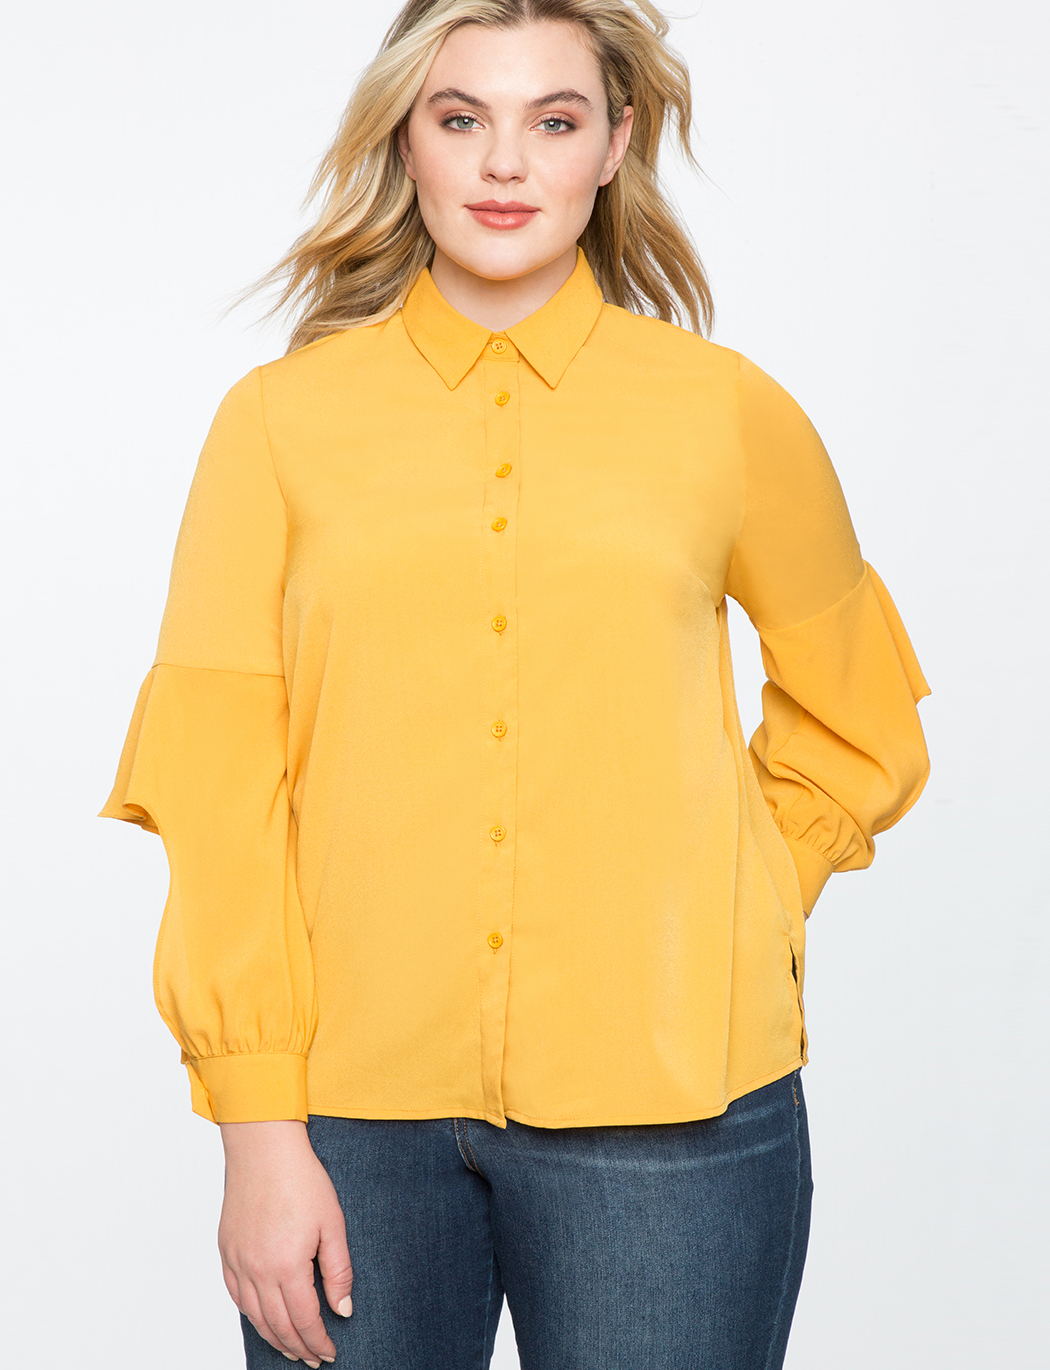 f6d795a299 Ruffled Cutout Button Down Blouse | Women's Plus Size Tops | ELOQUII